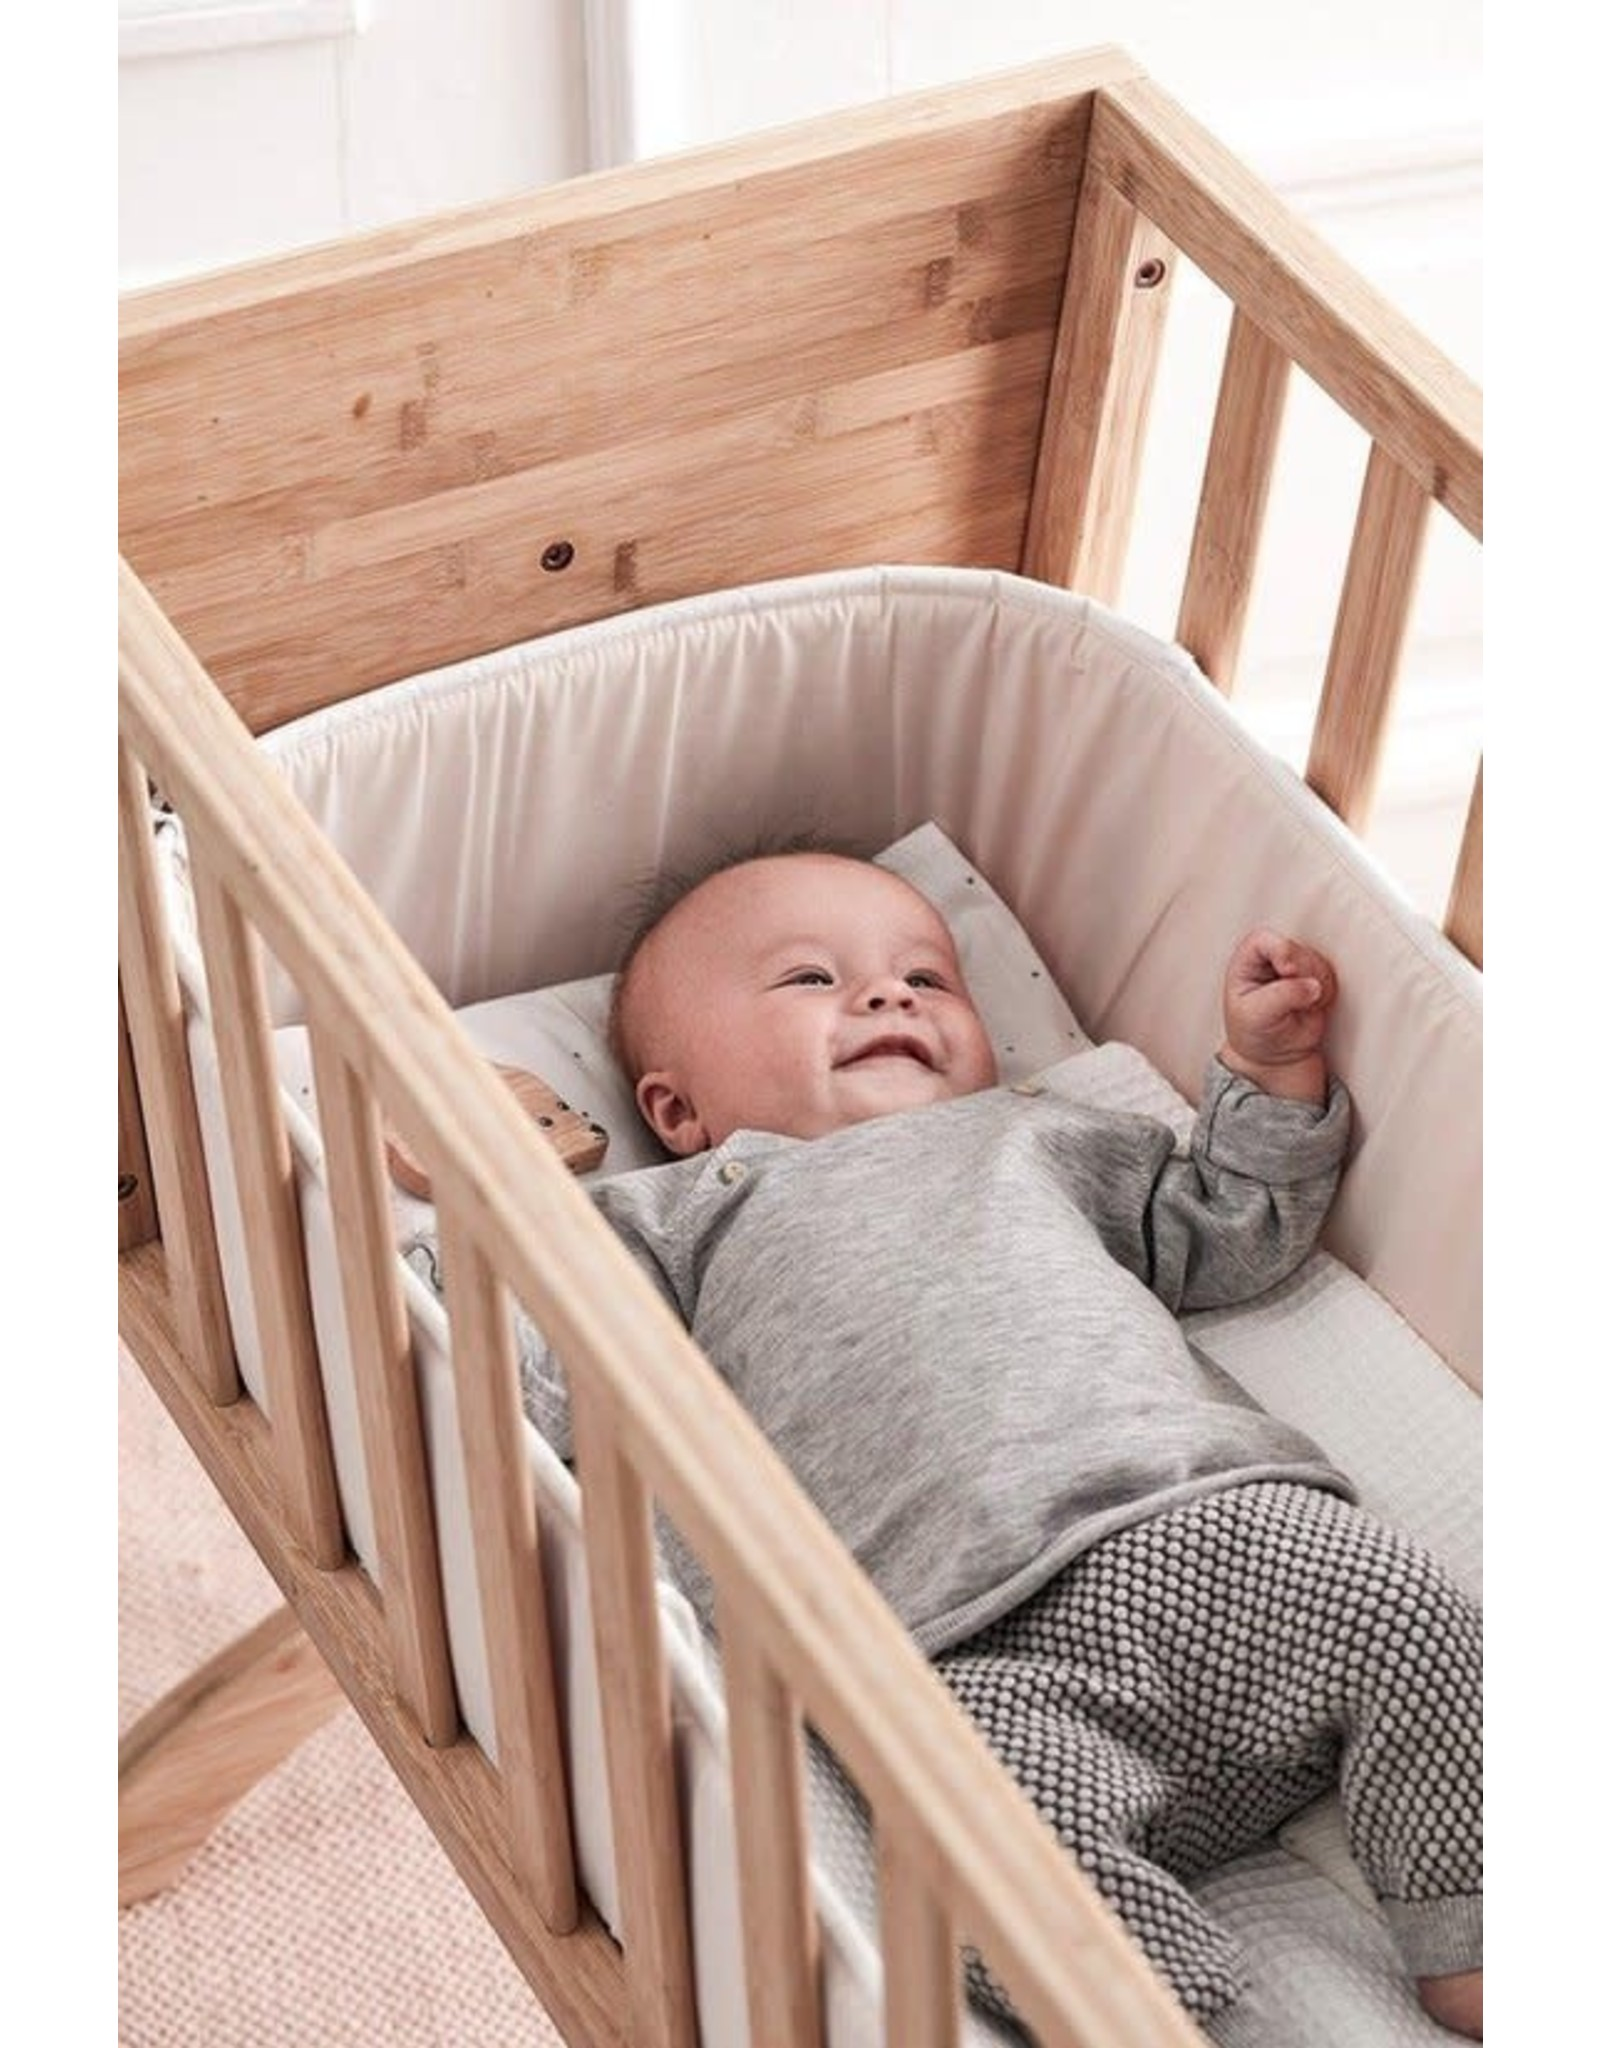 Kid's concept Kid's Concept Wieg Bamboo 105x52x83